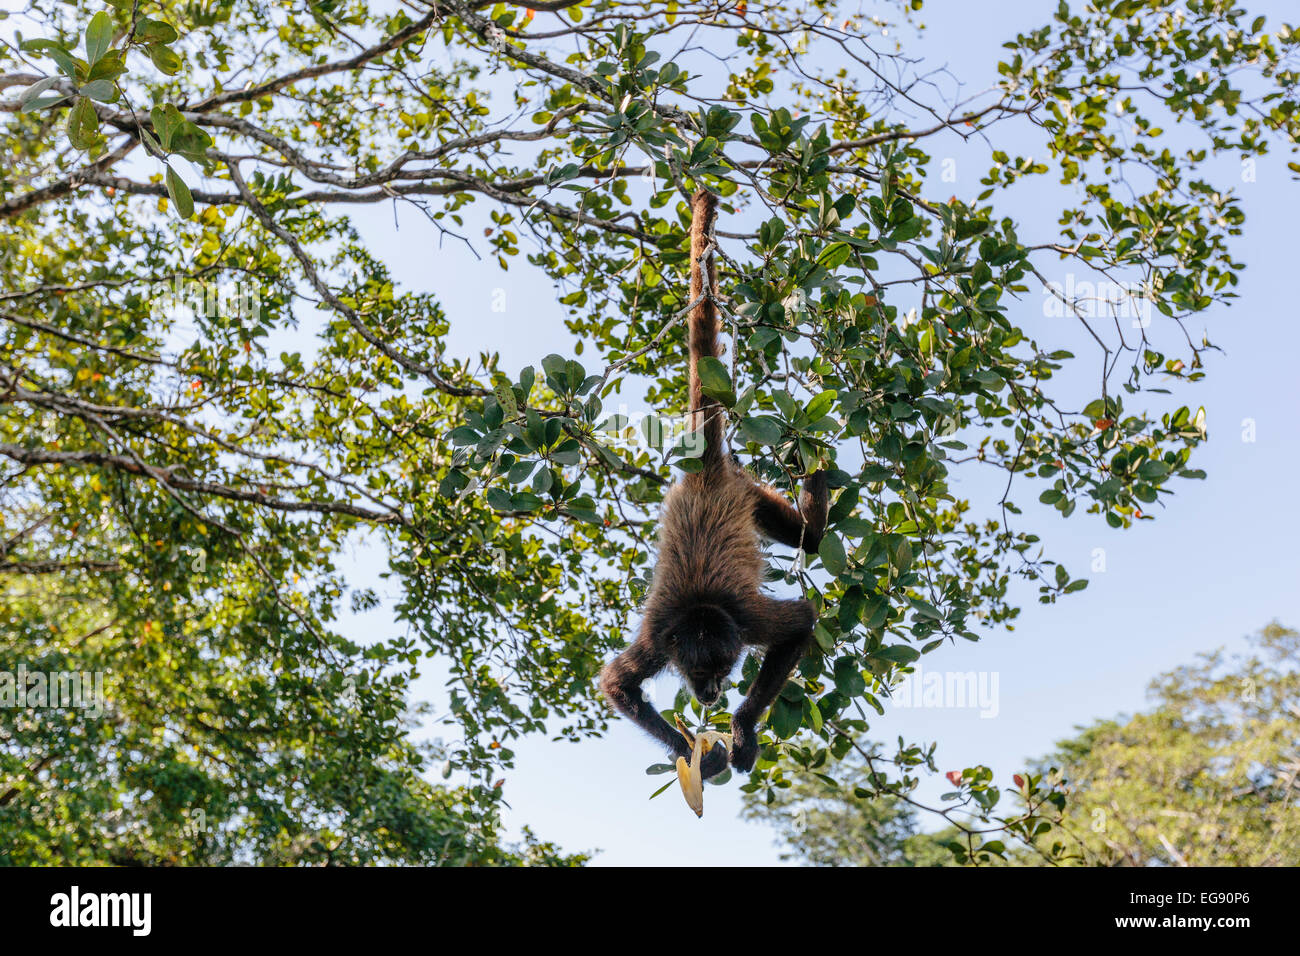 monkey eating a banana while hanging upside down from a tree